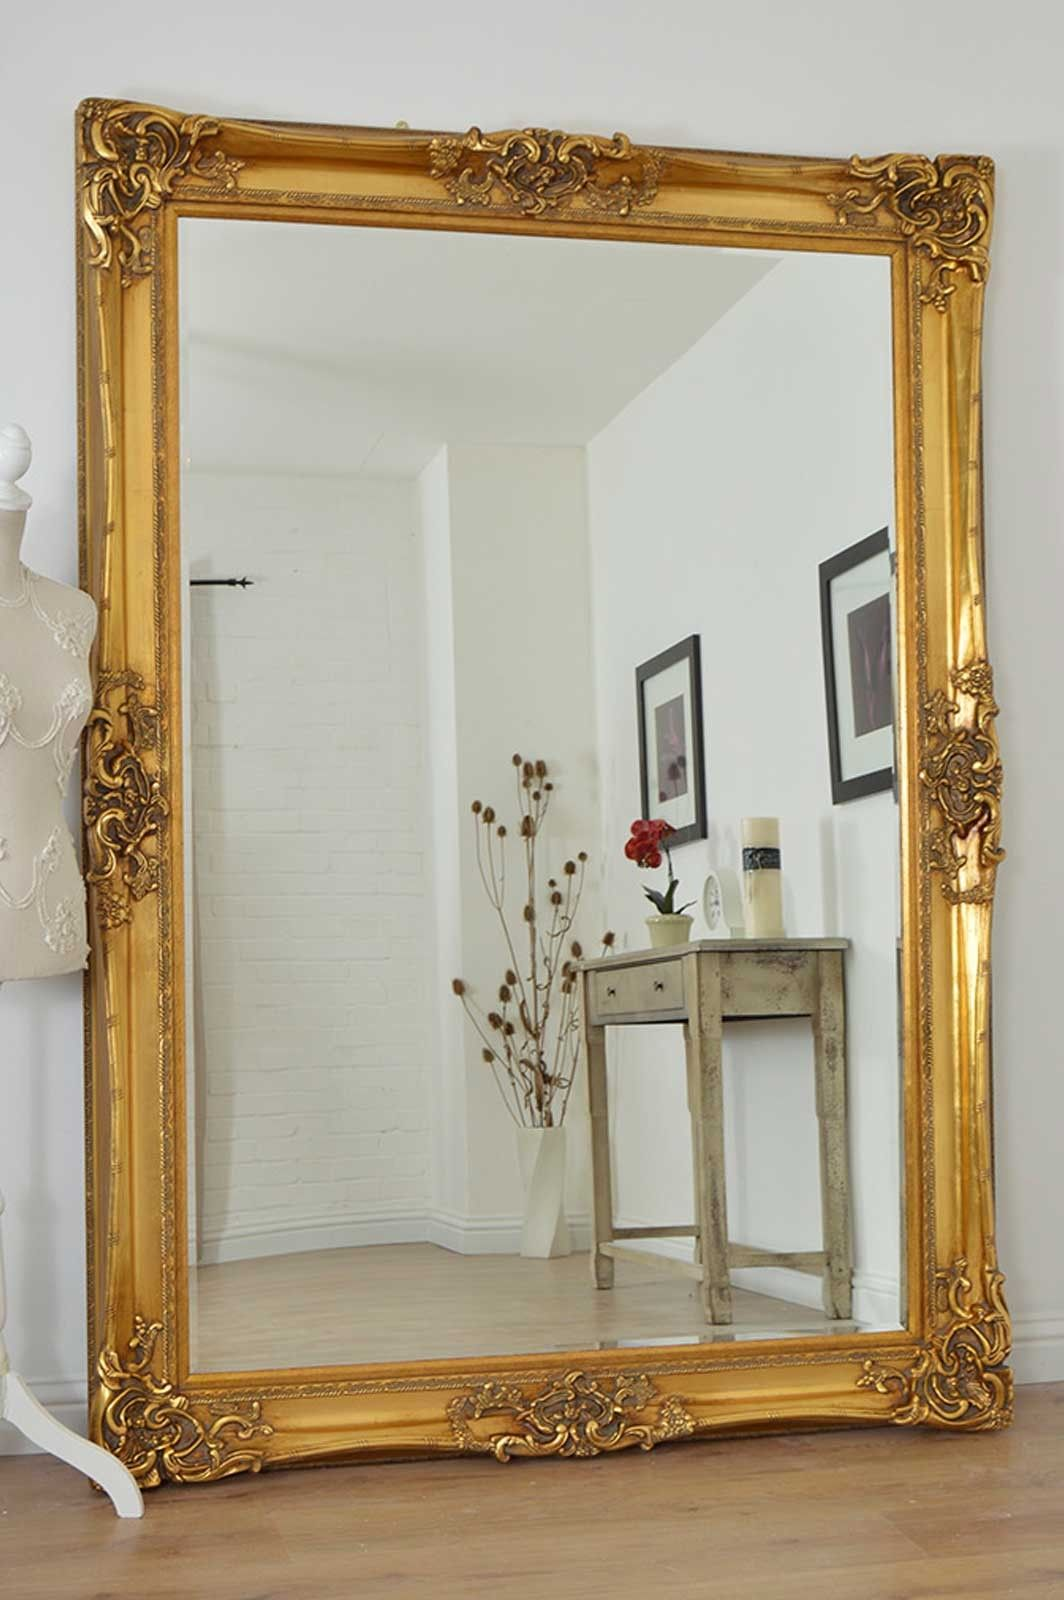 large gold very ornate antique design wall mirror 7ft x 5ft 213cm x 152cm